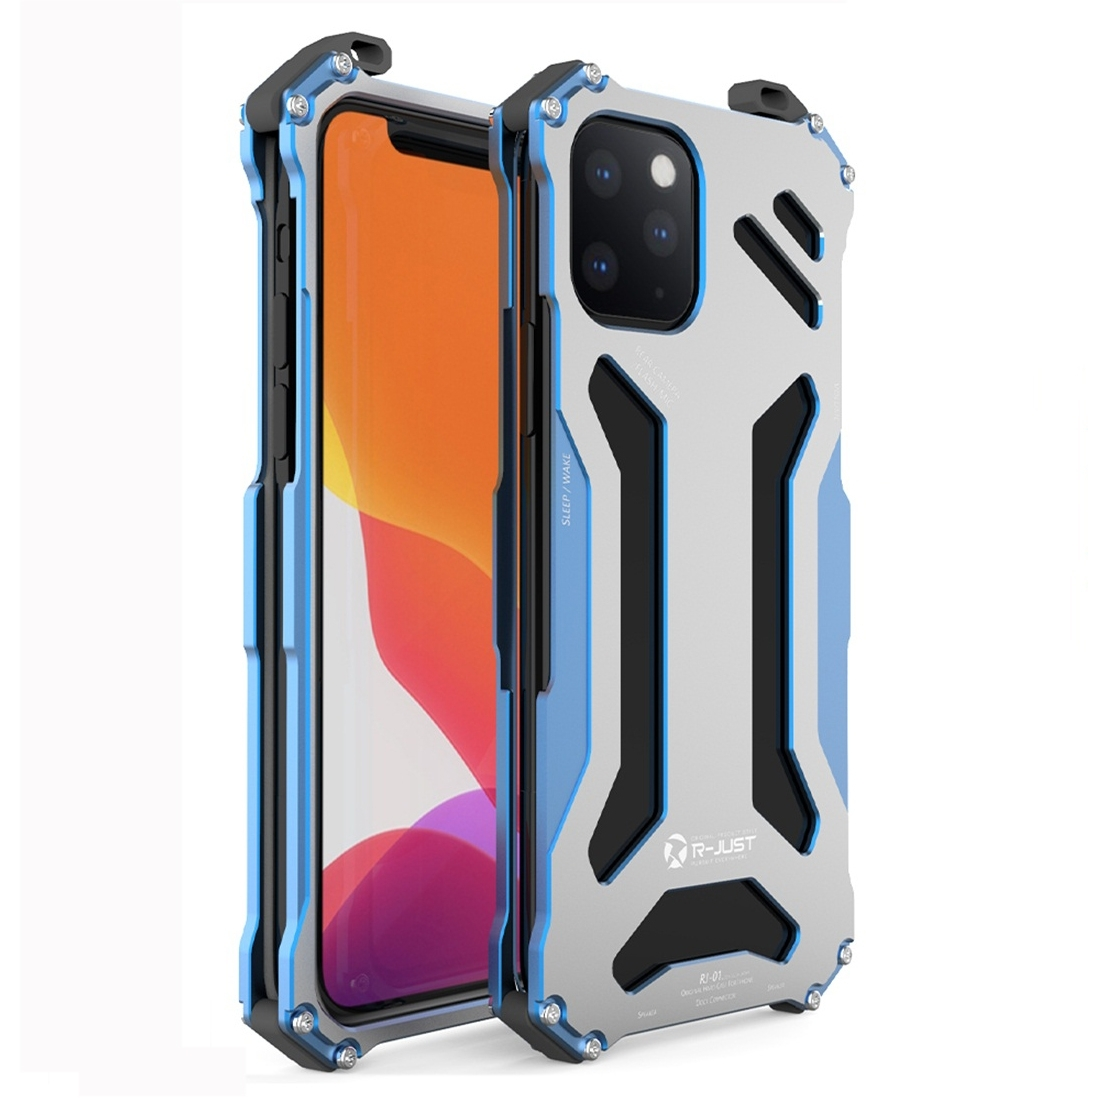 R-JUST Shockproof Armor Metal Case for iPhone 11 Pro Max